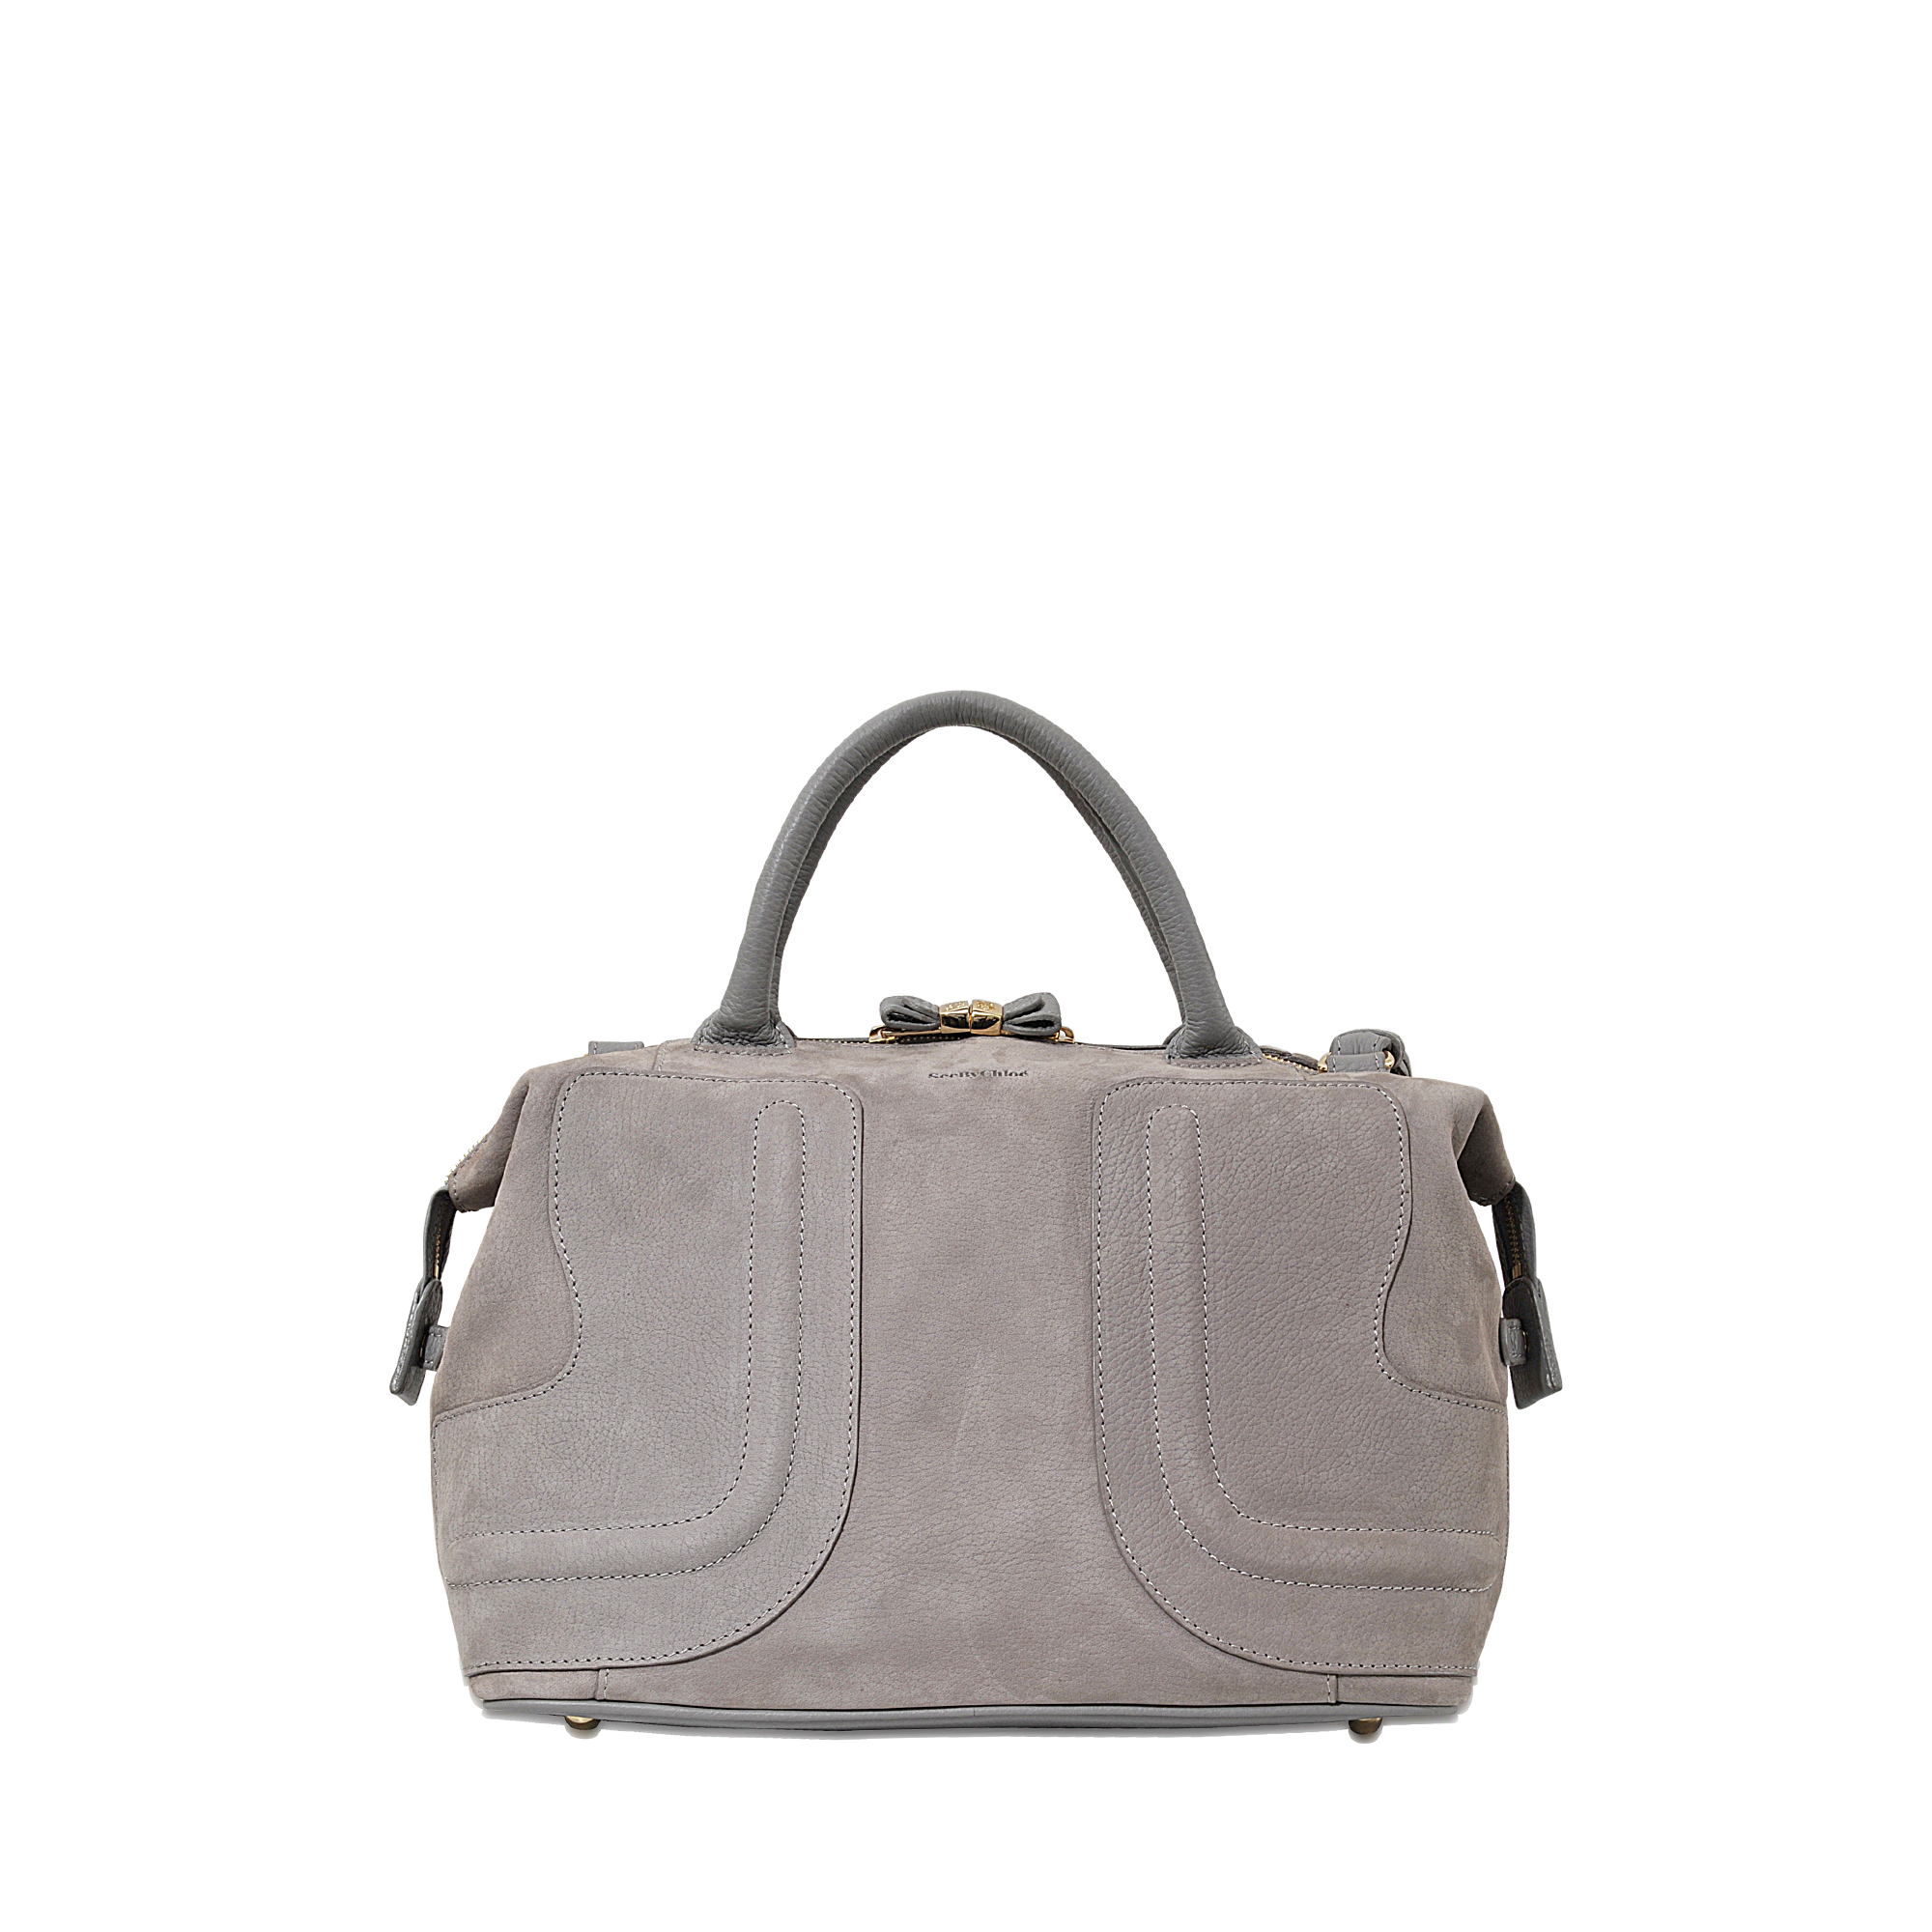 3c5ee69c80e45 See By Chloé Kay Bag in Gray - Lyst